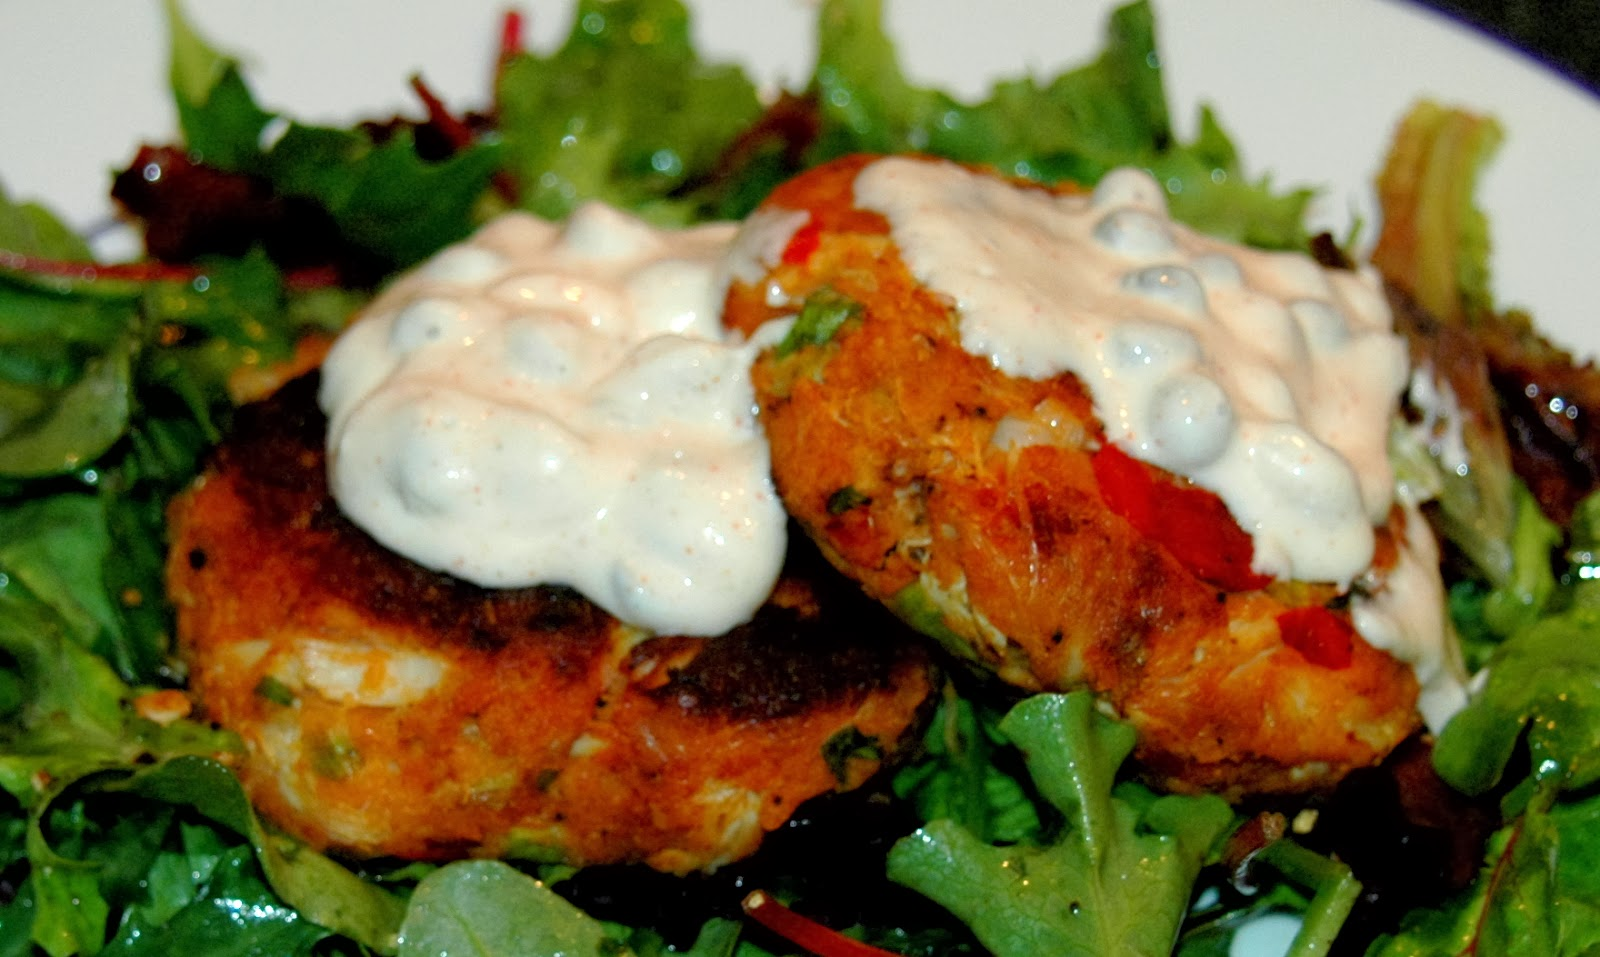 Creole Mustard Sauce For Crab Cakes